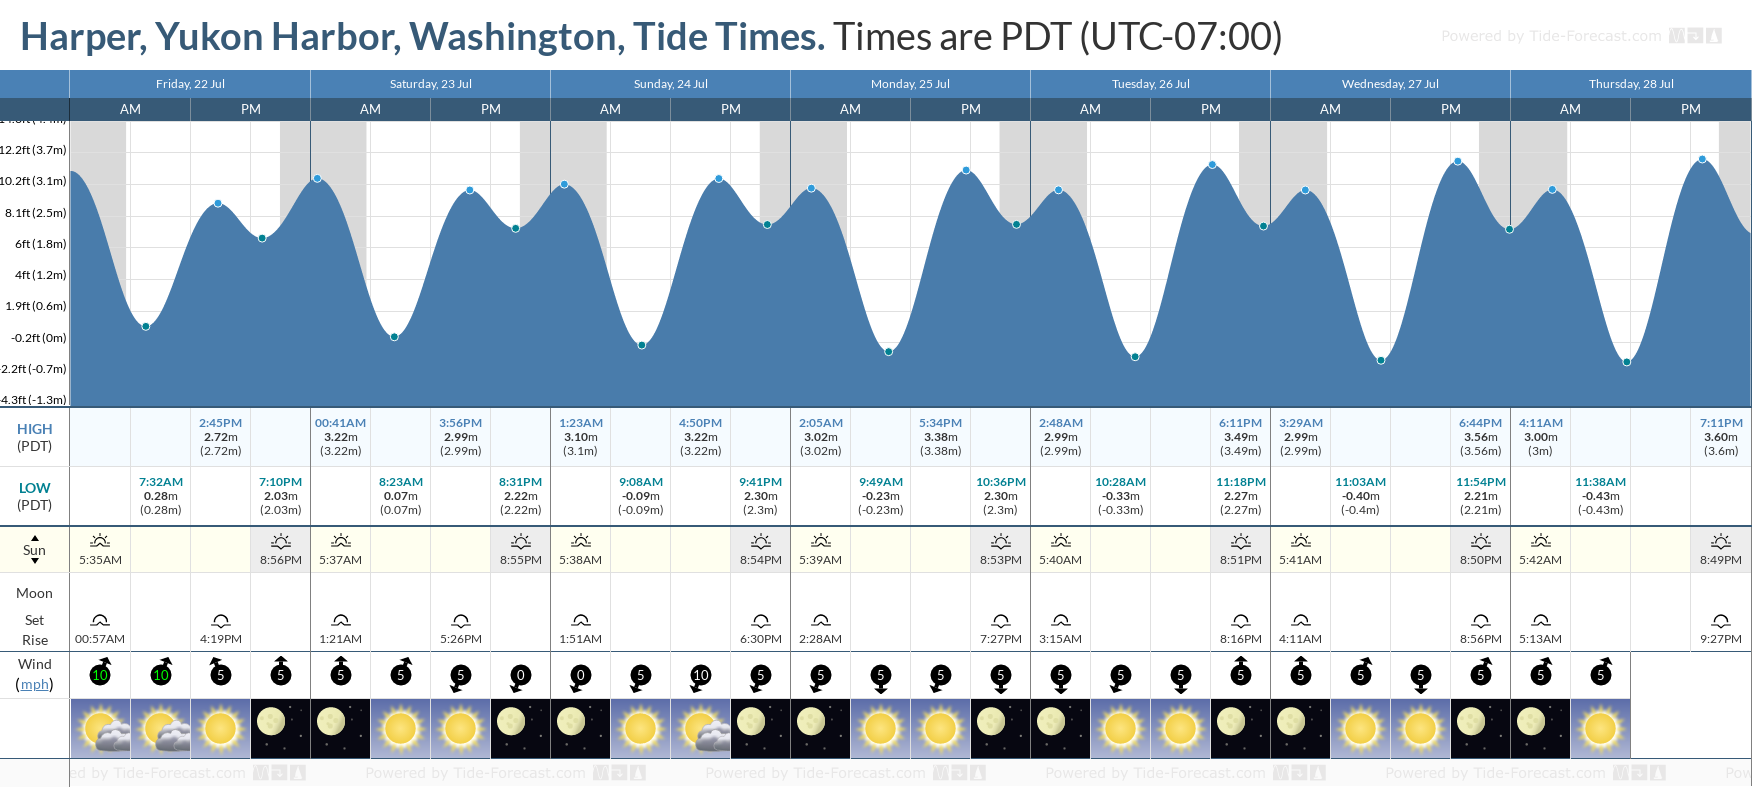 Harper, Yukon Harbor, Washington Tide Chart including high and low tide tide times for the next 7 days